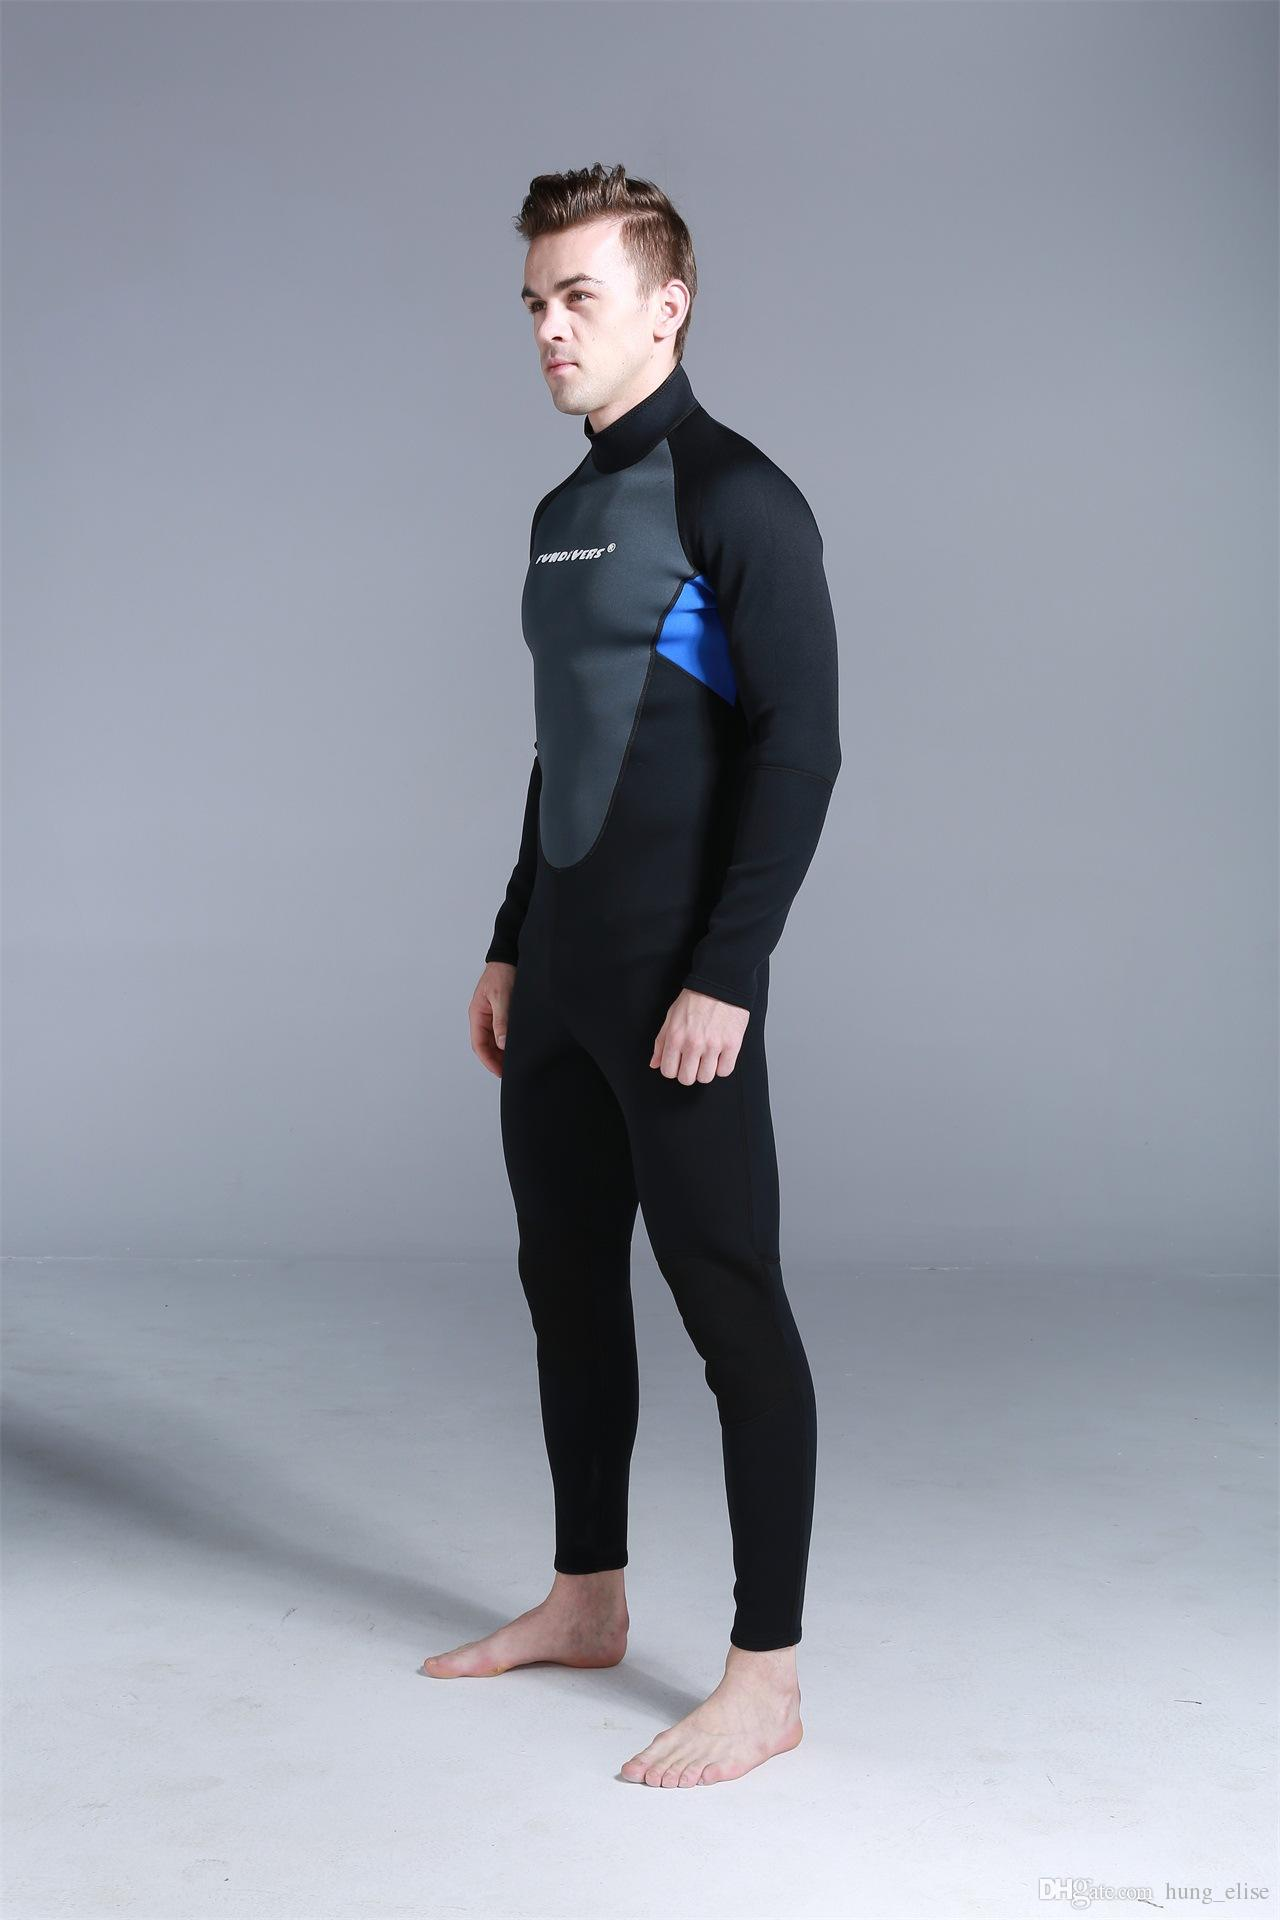 3mm SCR Scuba Dive Wetsuit For Men Spearfishing Wet Suit Surf Diving Equipment Suits Spear Fishing S-3XL